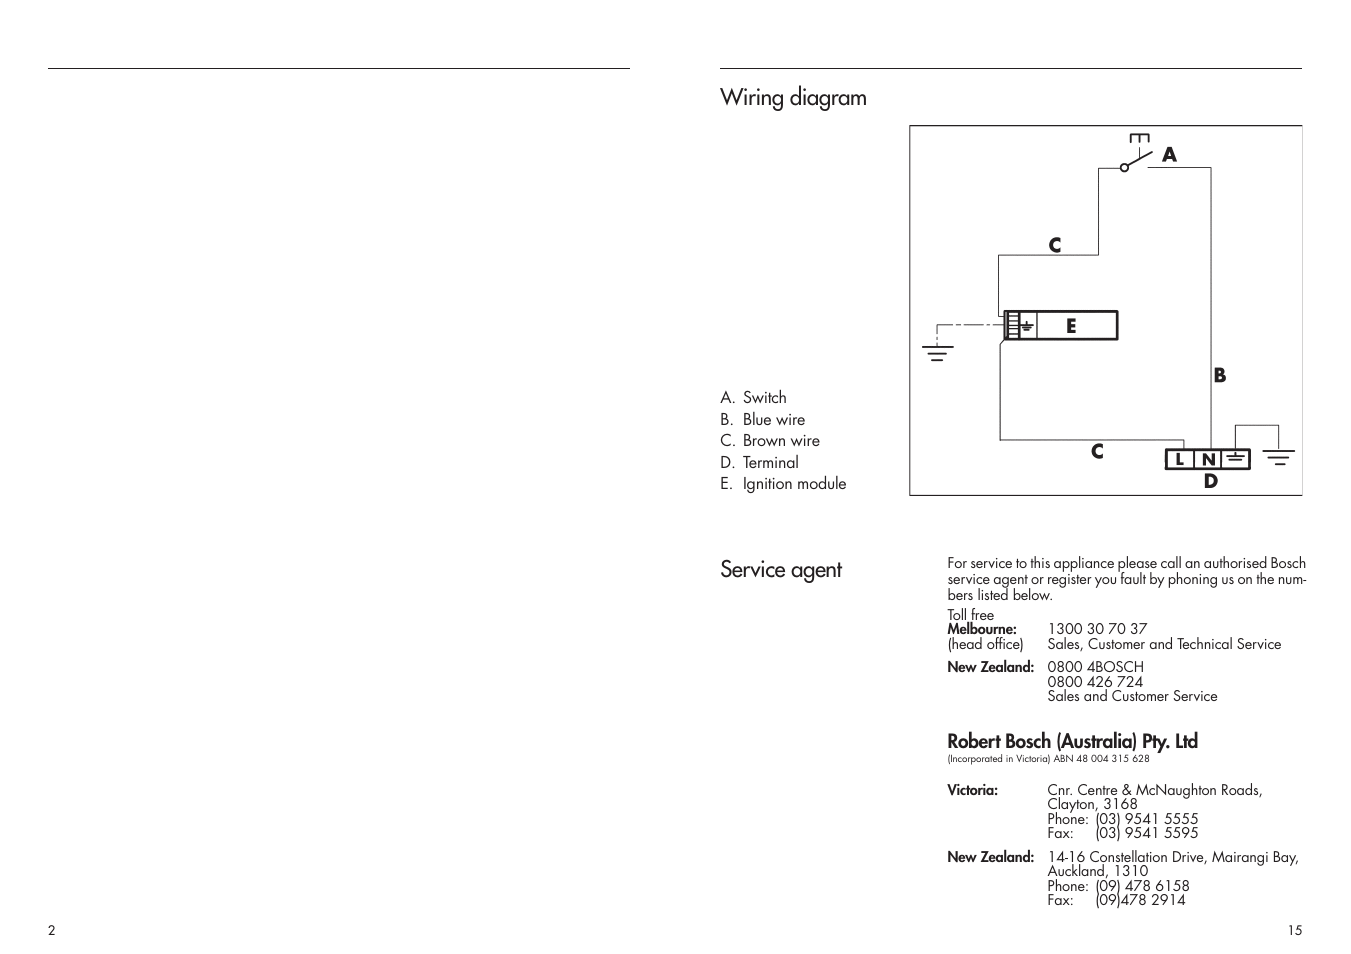 Bosch Ignition Module Wiring Diagram Library New Zealand Service Agent Pch 615 Dau User Manual Page 2 8